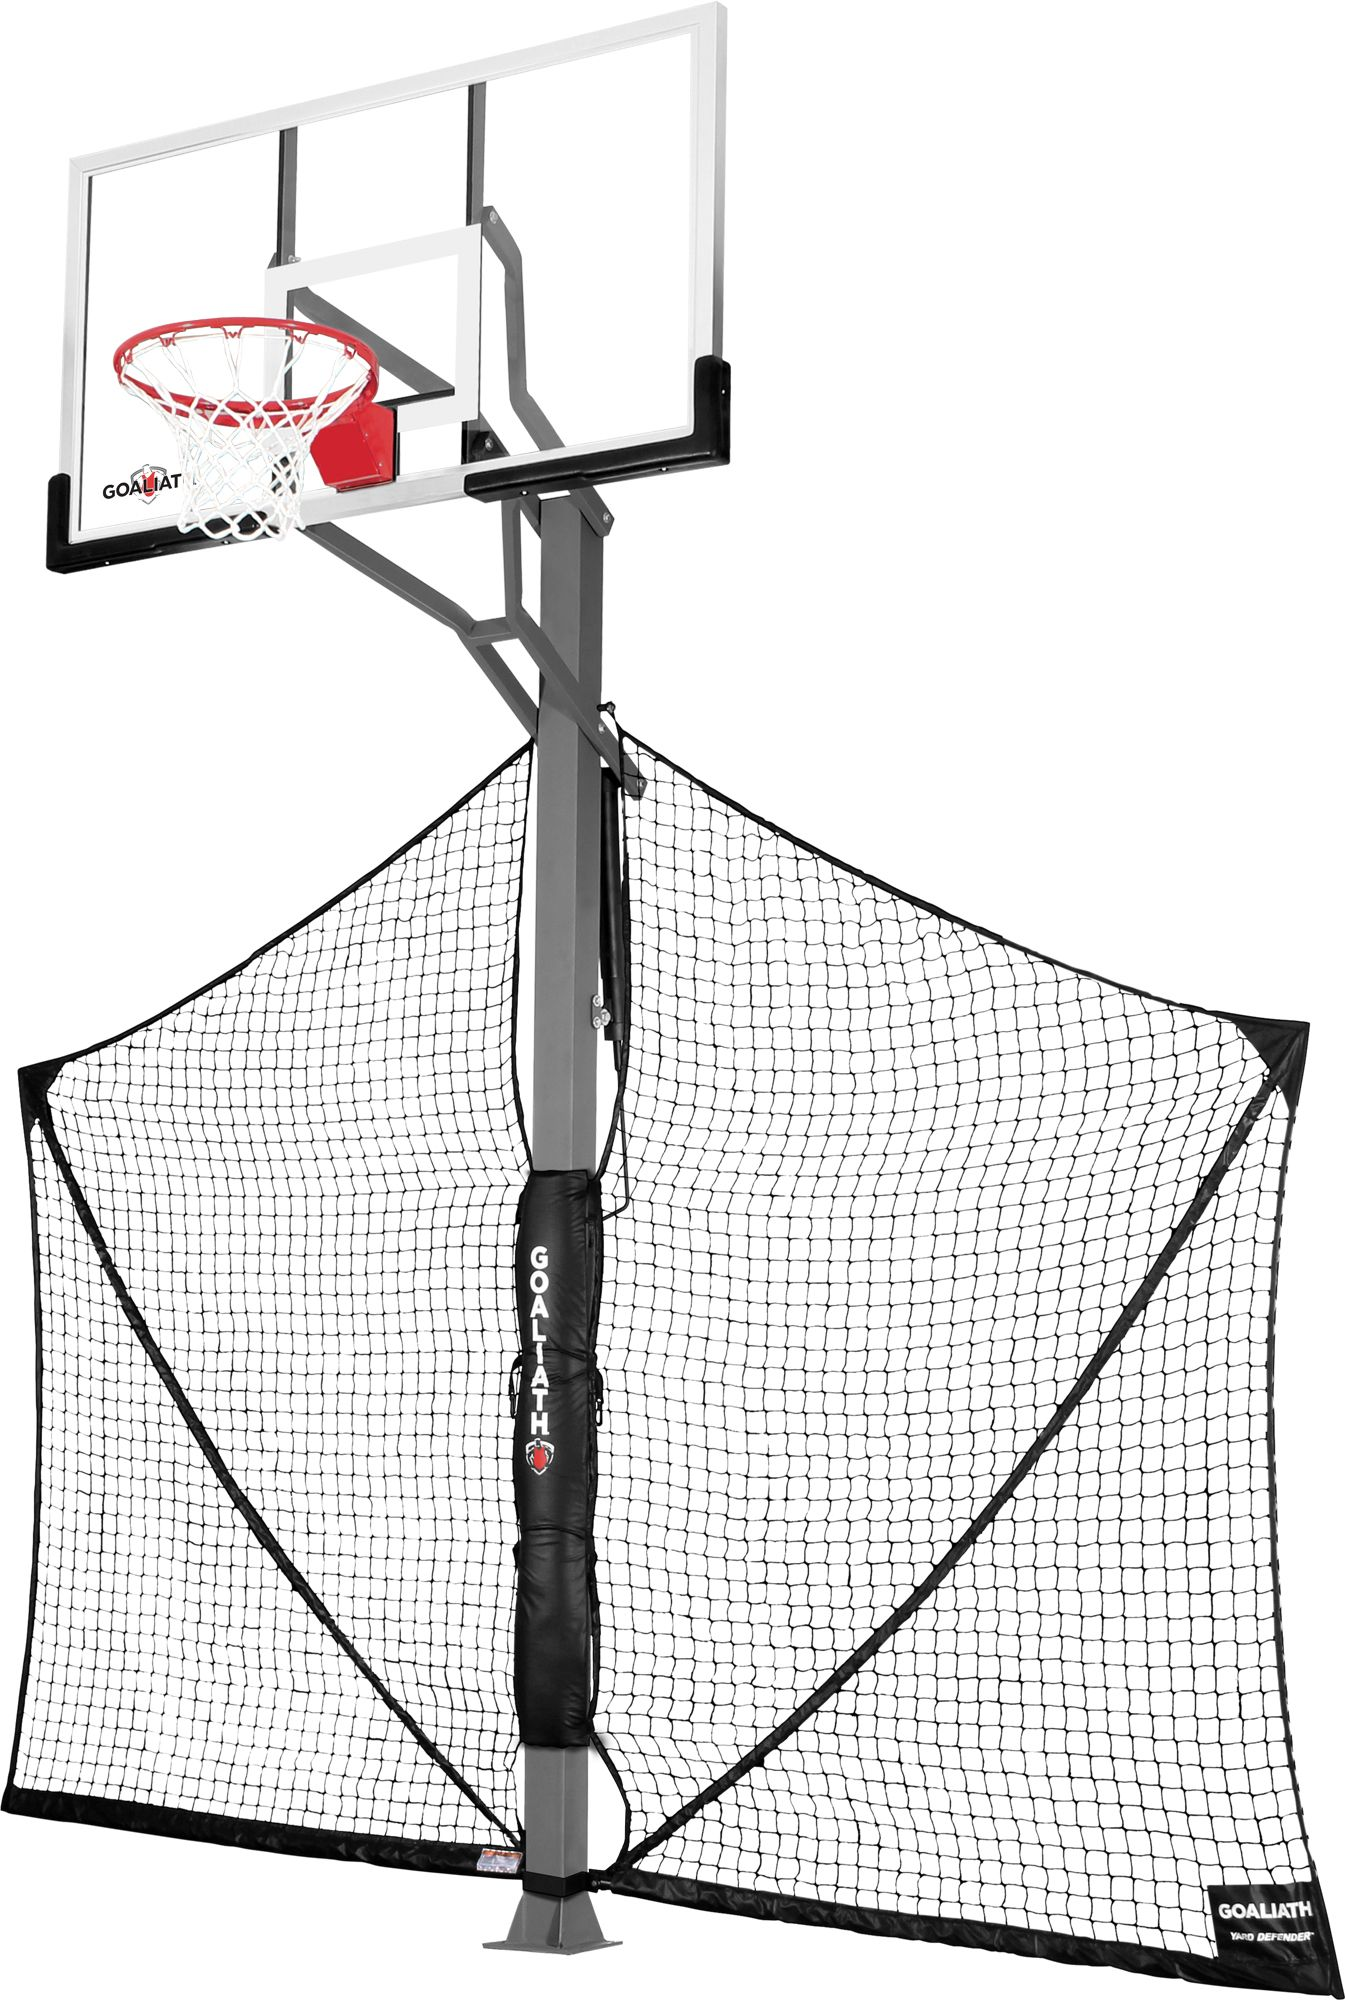 Goaliath 60u201d In Ground Basketball Hoop With Yard Defender